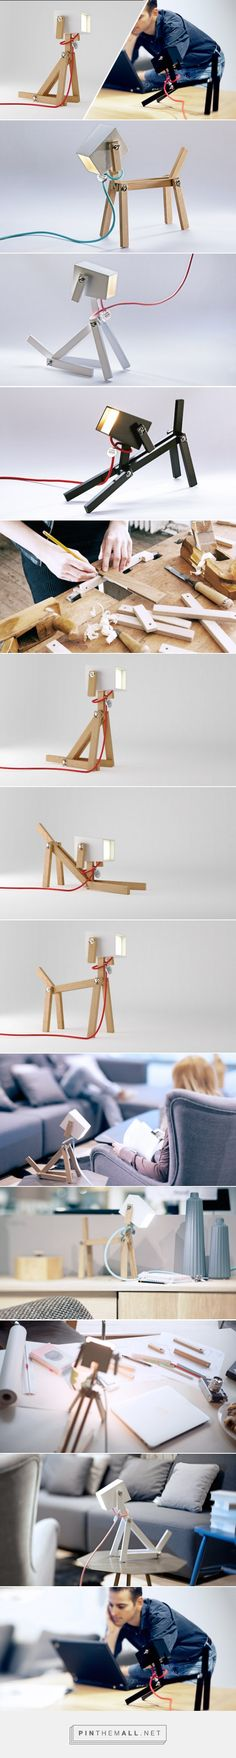 luminose lamp zimmerer and lente feel desain created via pinthemall net - Life ideas